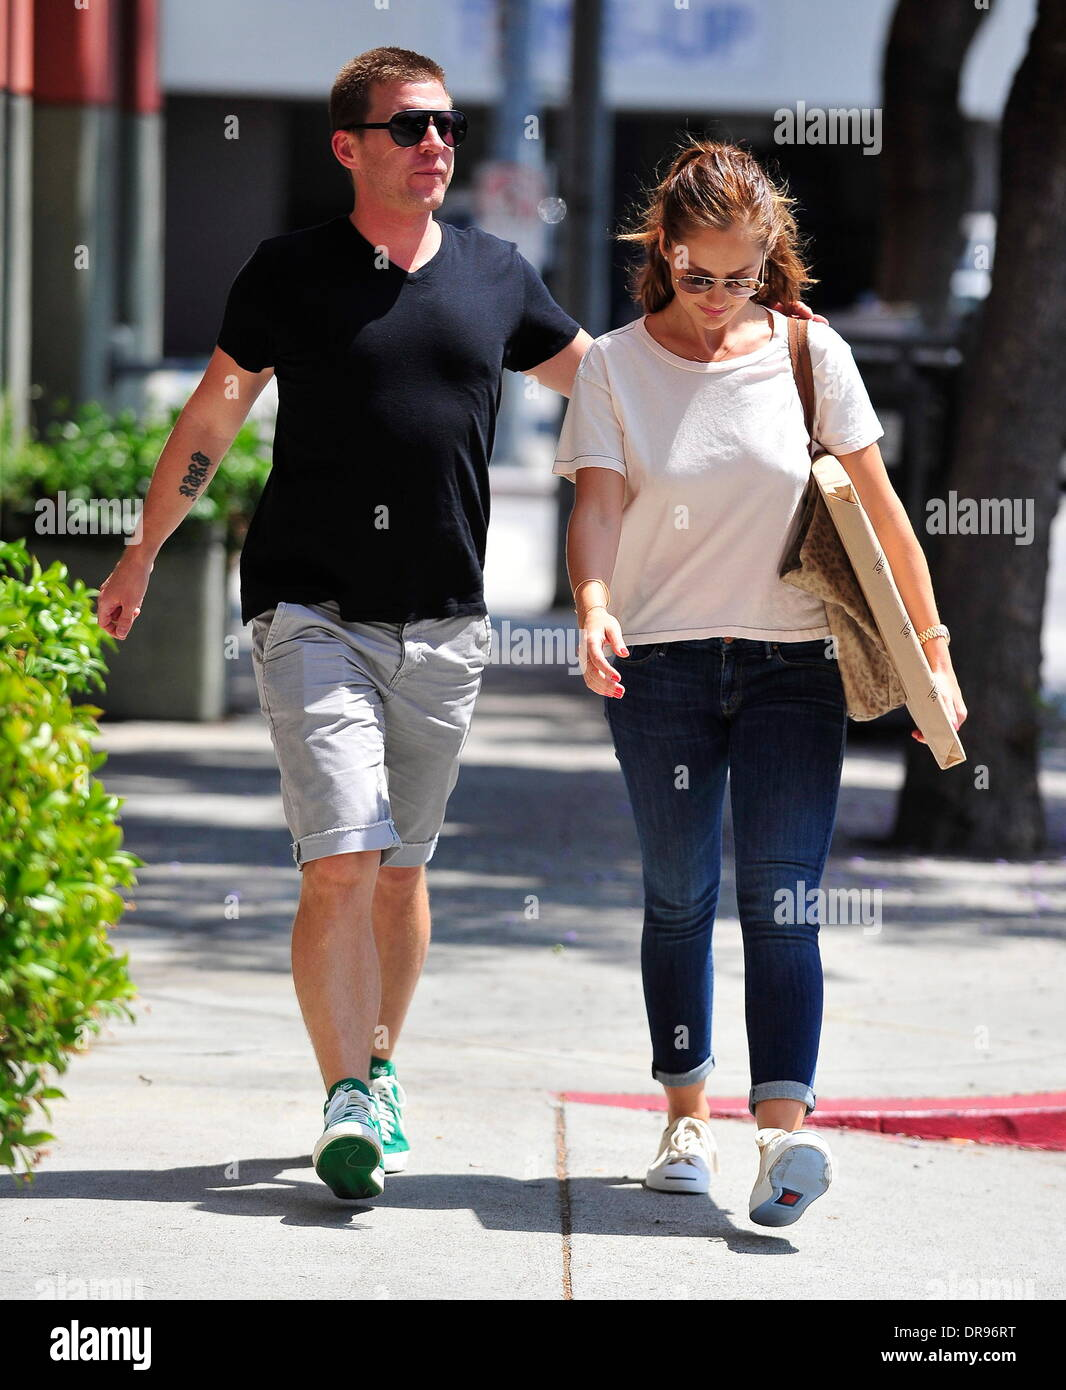 Minka Kelly seen out and about with a male companion holding